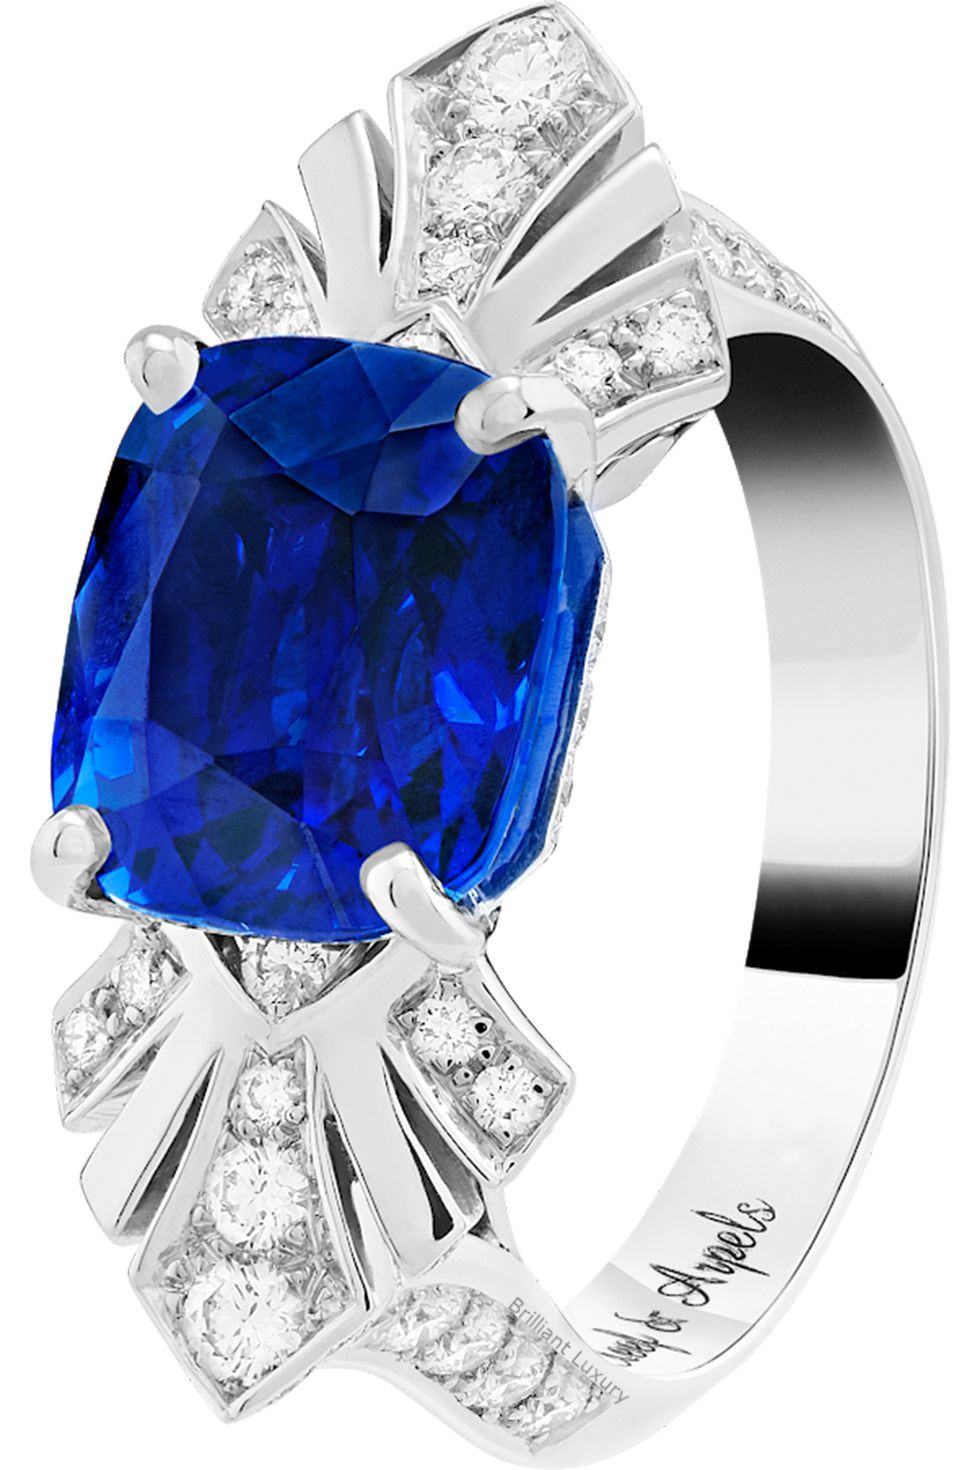 Brilliant Luxury│Van Cleef and Arpels sapphire ring